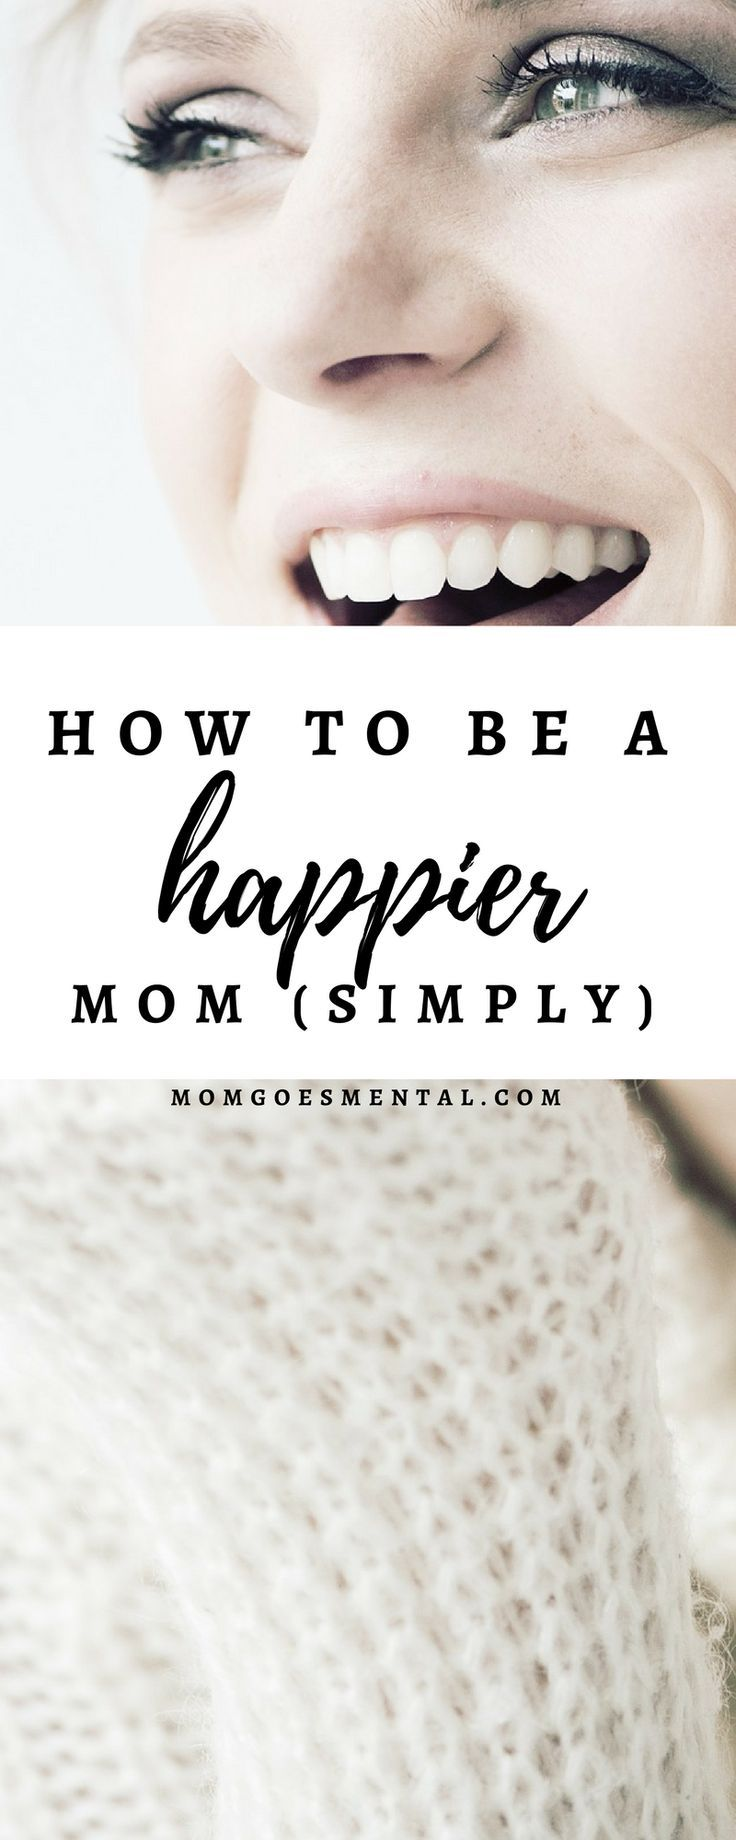 How to be a Happier Mom - Tips and tricks to making motherhood happy, organized, and healthy and loving your kids along the way! via @momgoesmental